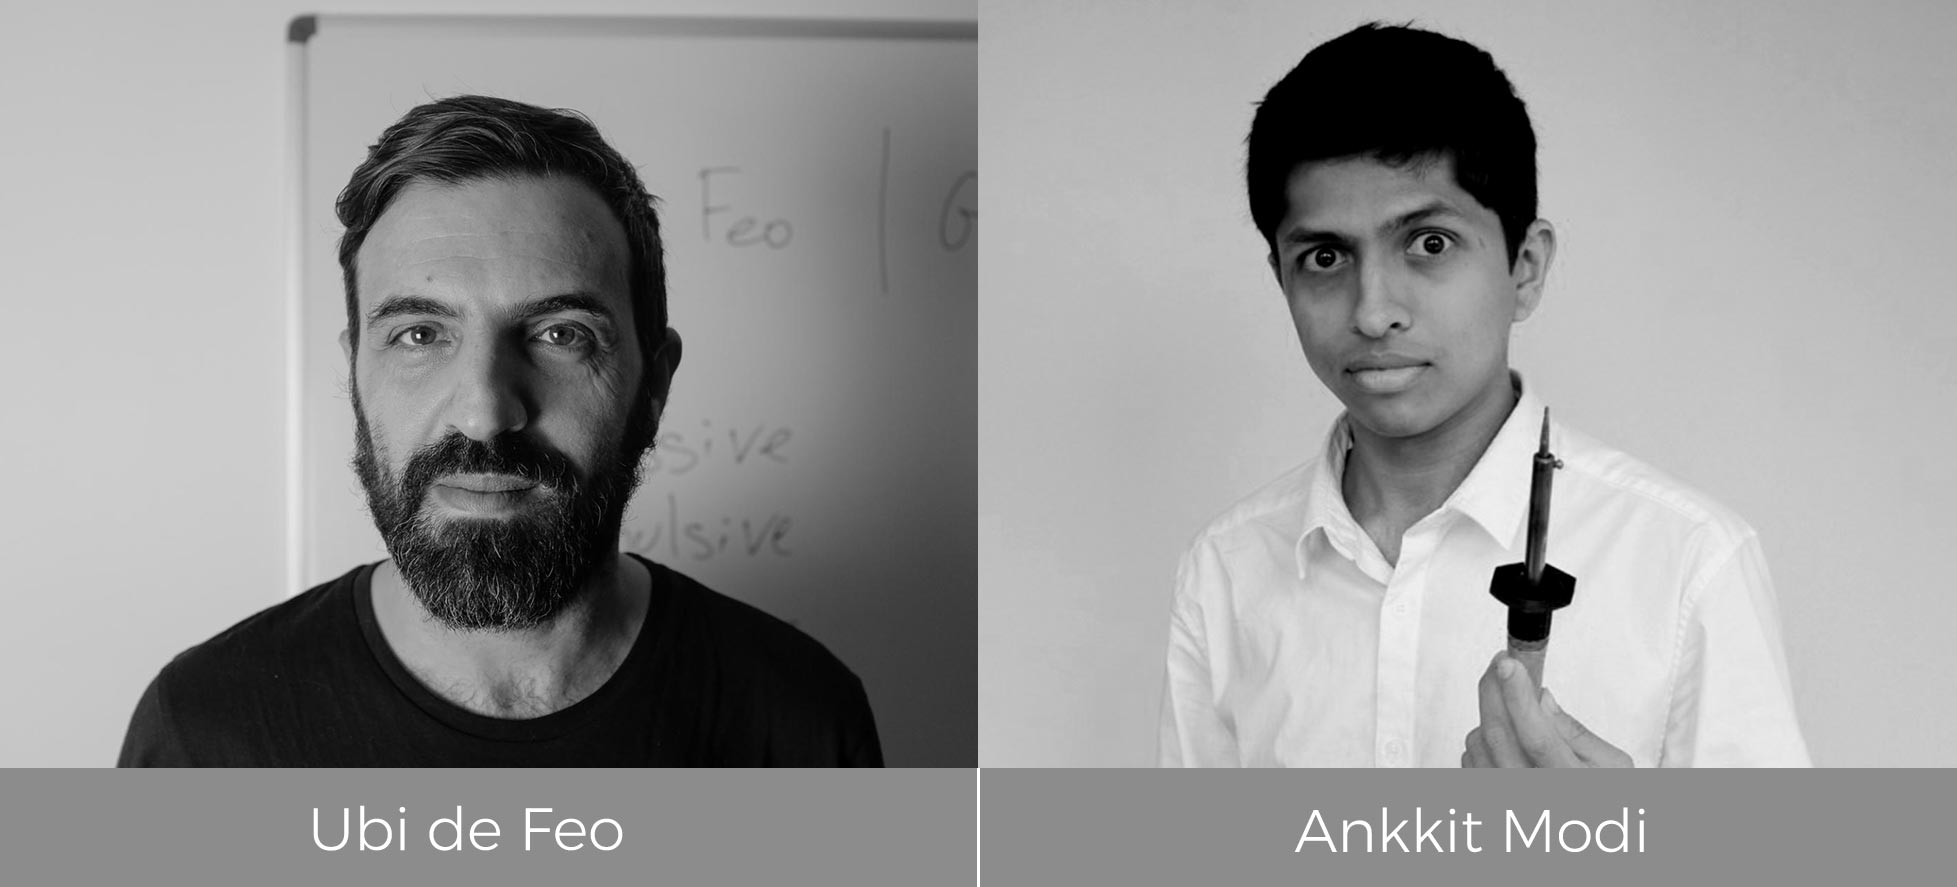 Ubi de Feo and Ankkit Modi